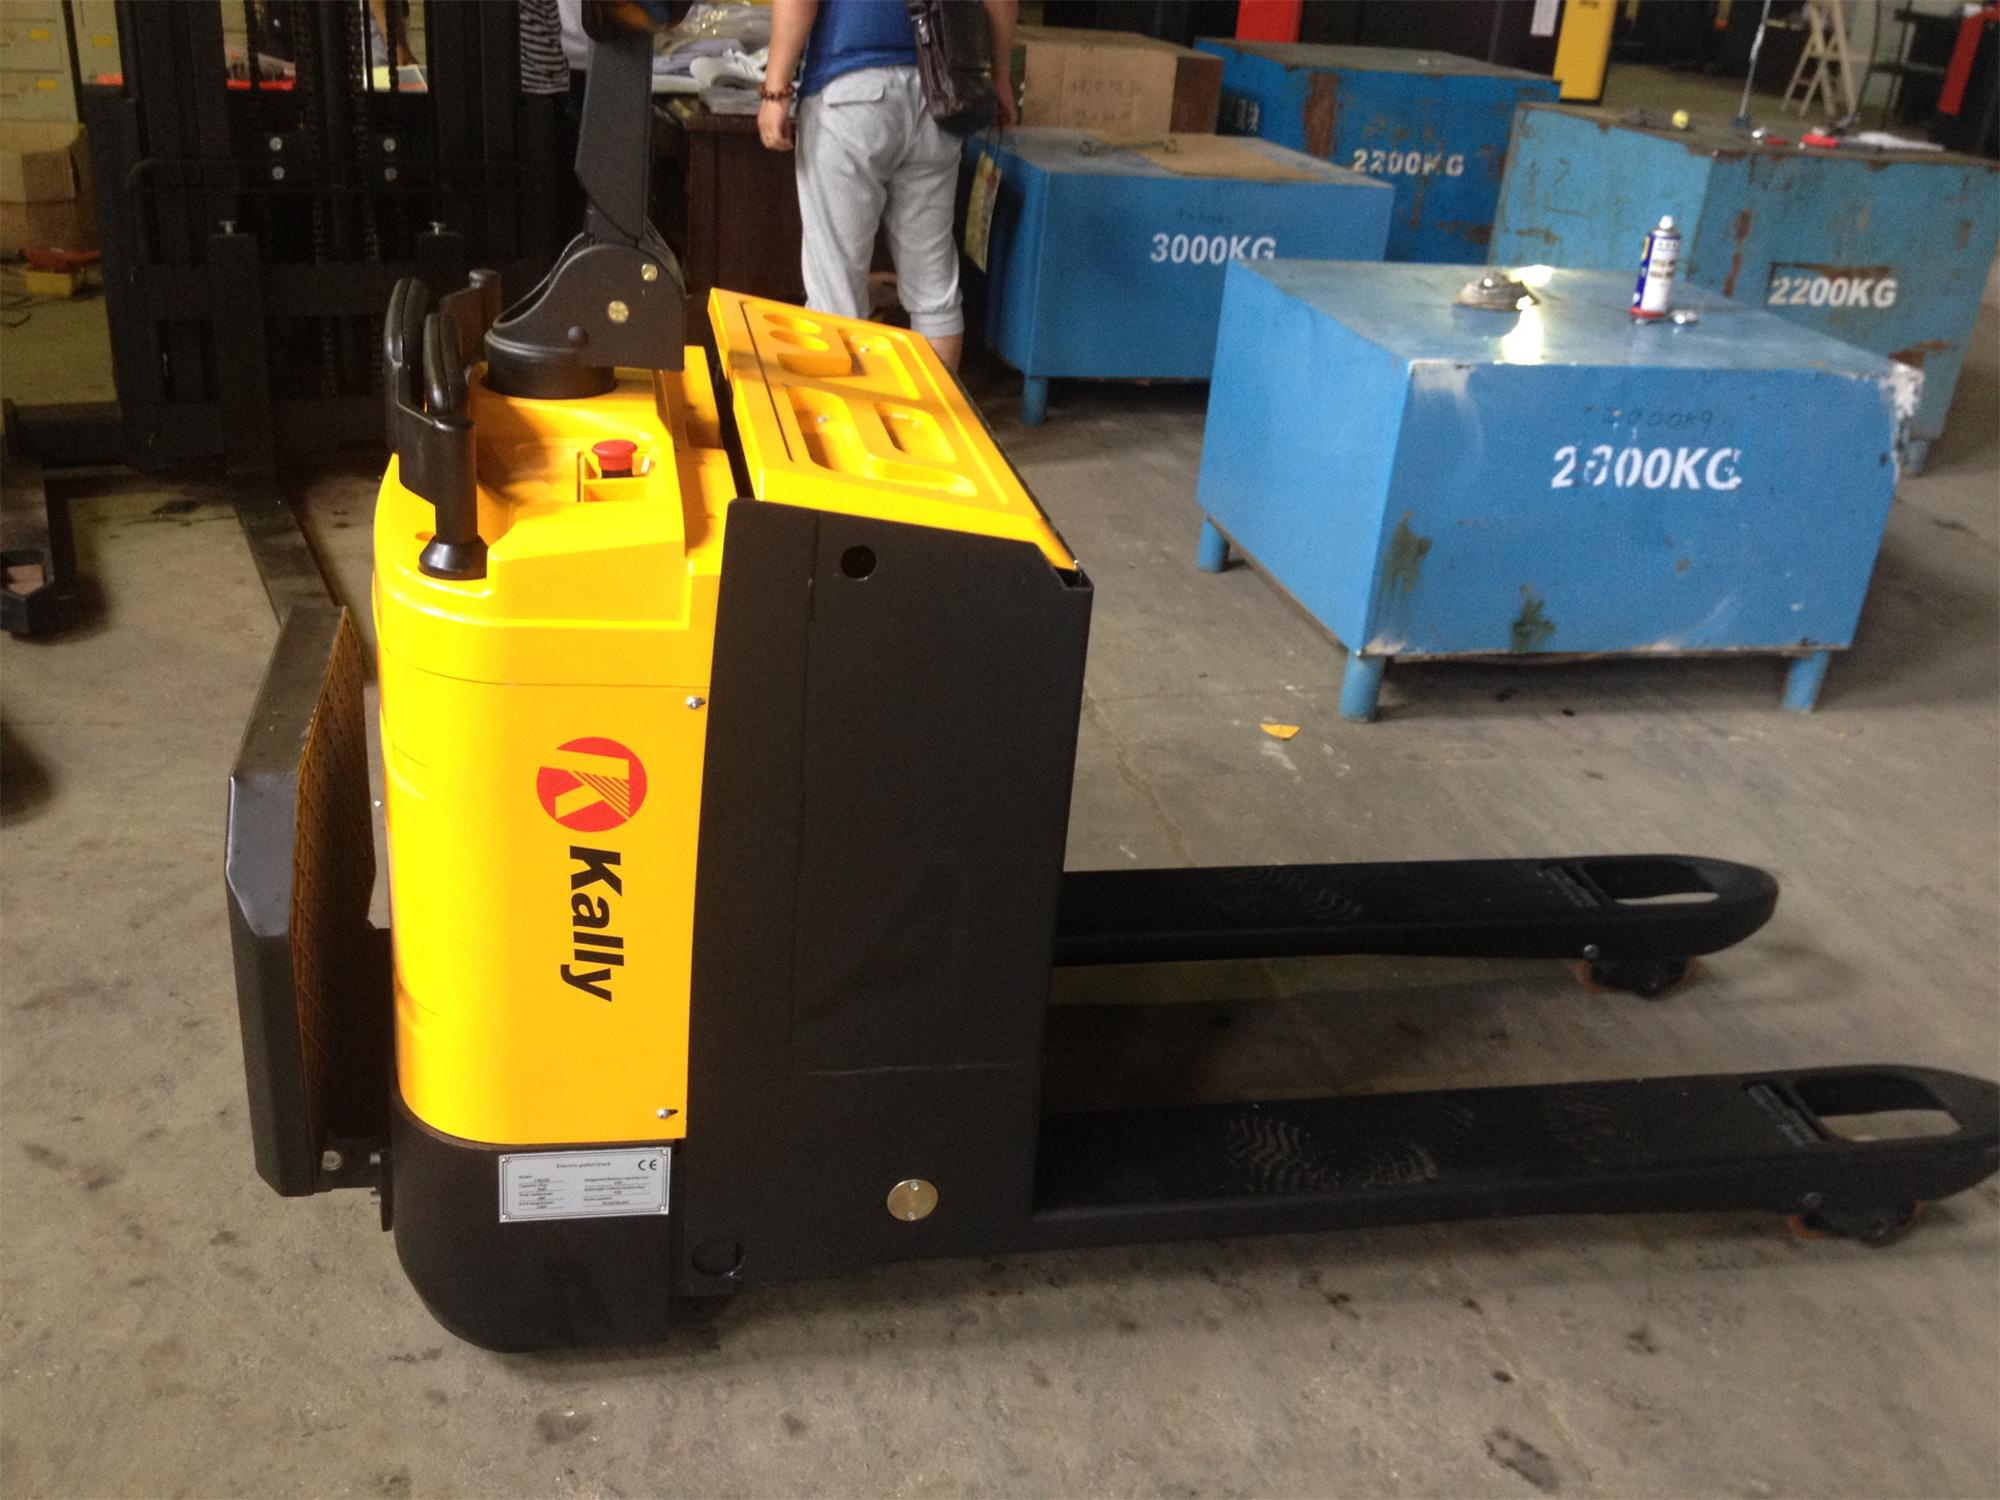 Kally Electric Pallet Truck